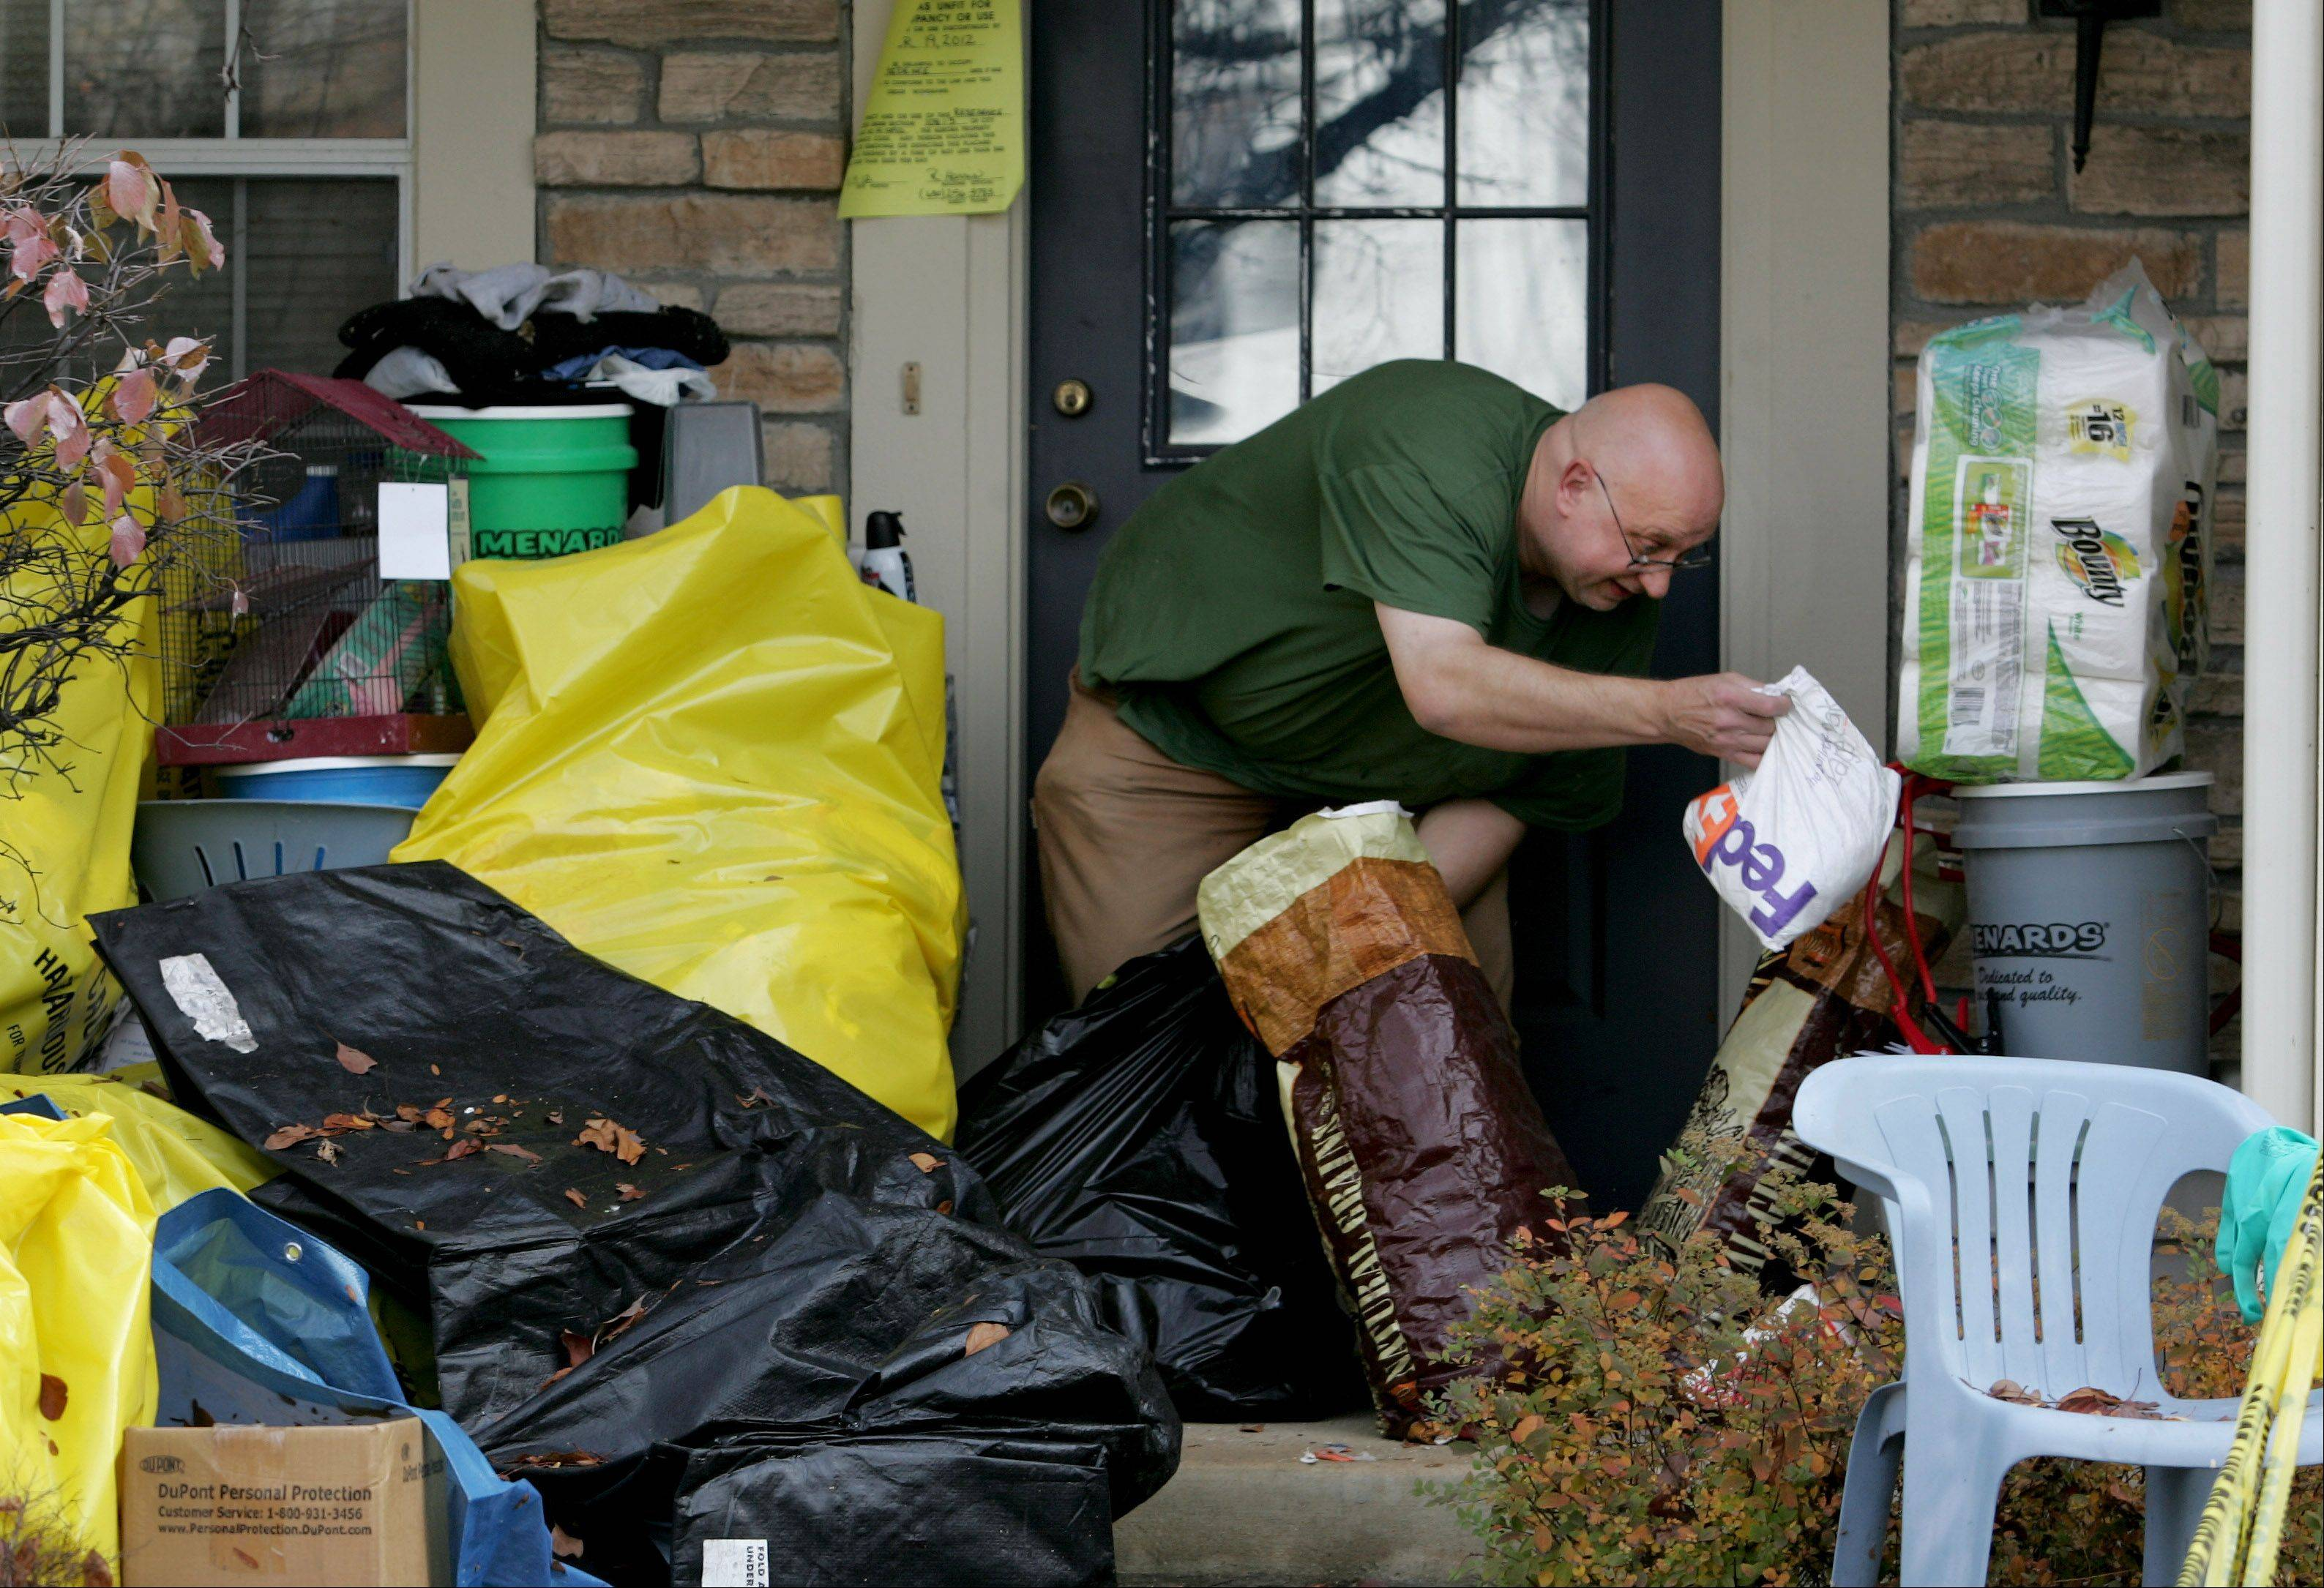 Dave Skeberdis wants to clean up his own home by Friday, after Aurora officials discovered roughly 300 birds and piles of garbage inside the house last week. But city officials said mold counts are up to 15 times higher than normal and they are seeking a court order to take over.